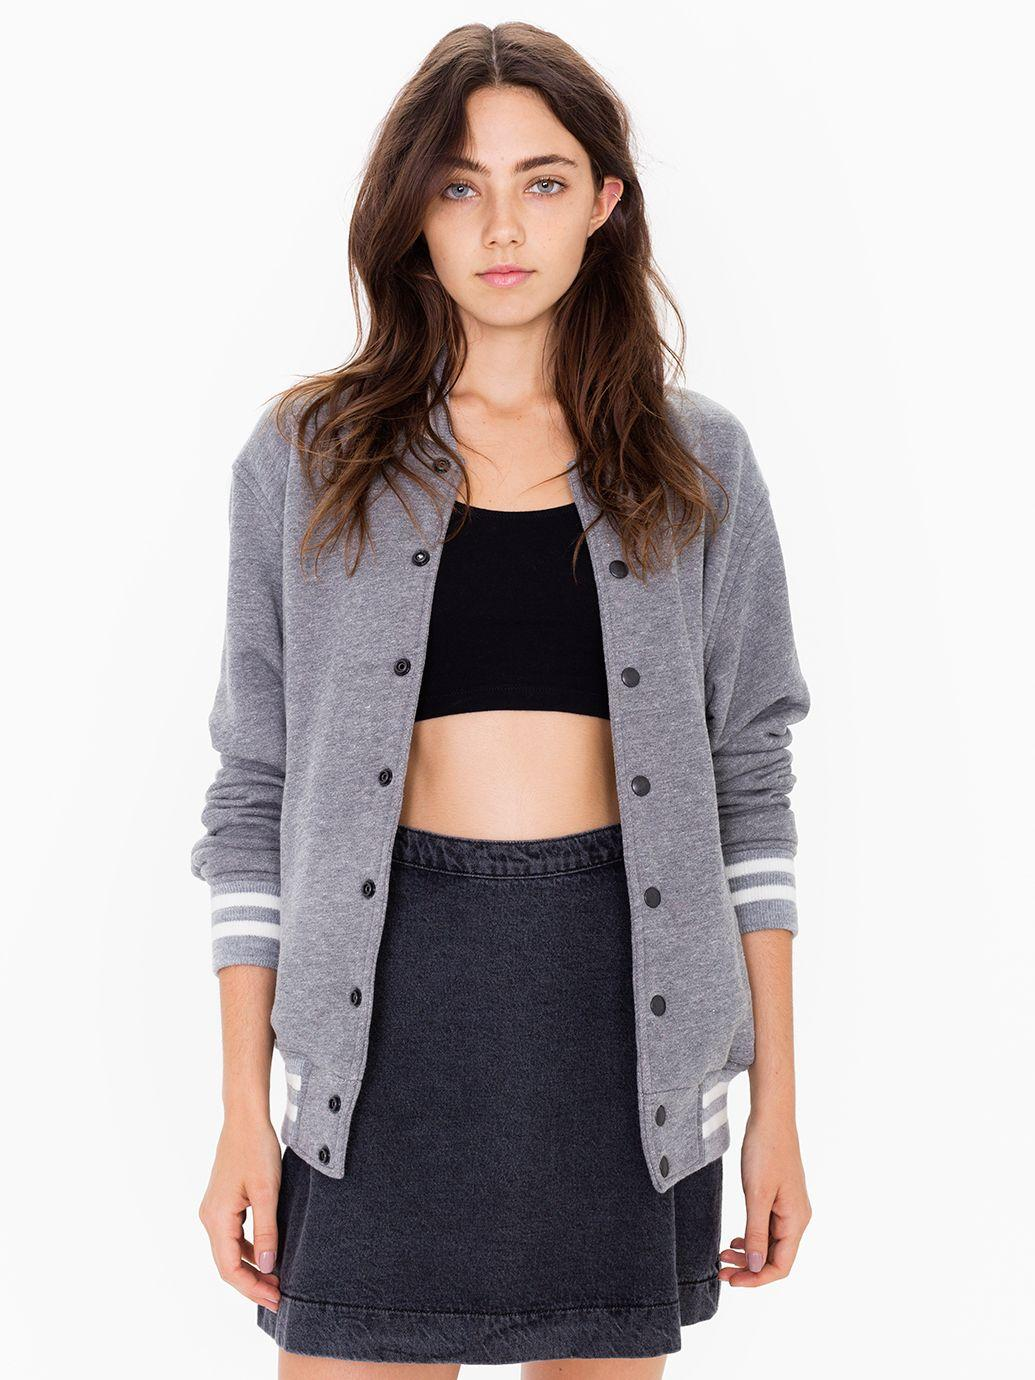 25% Off Select Coats and Jackets at American Apparel